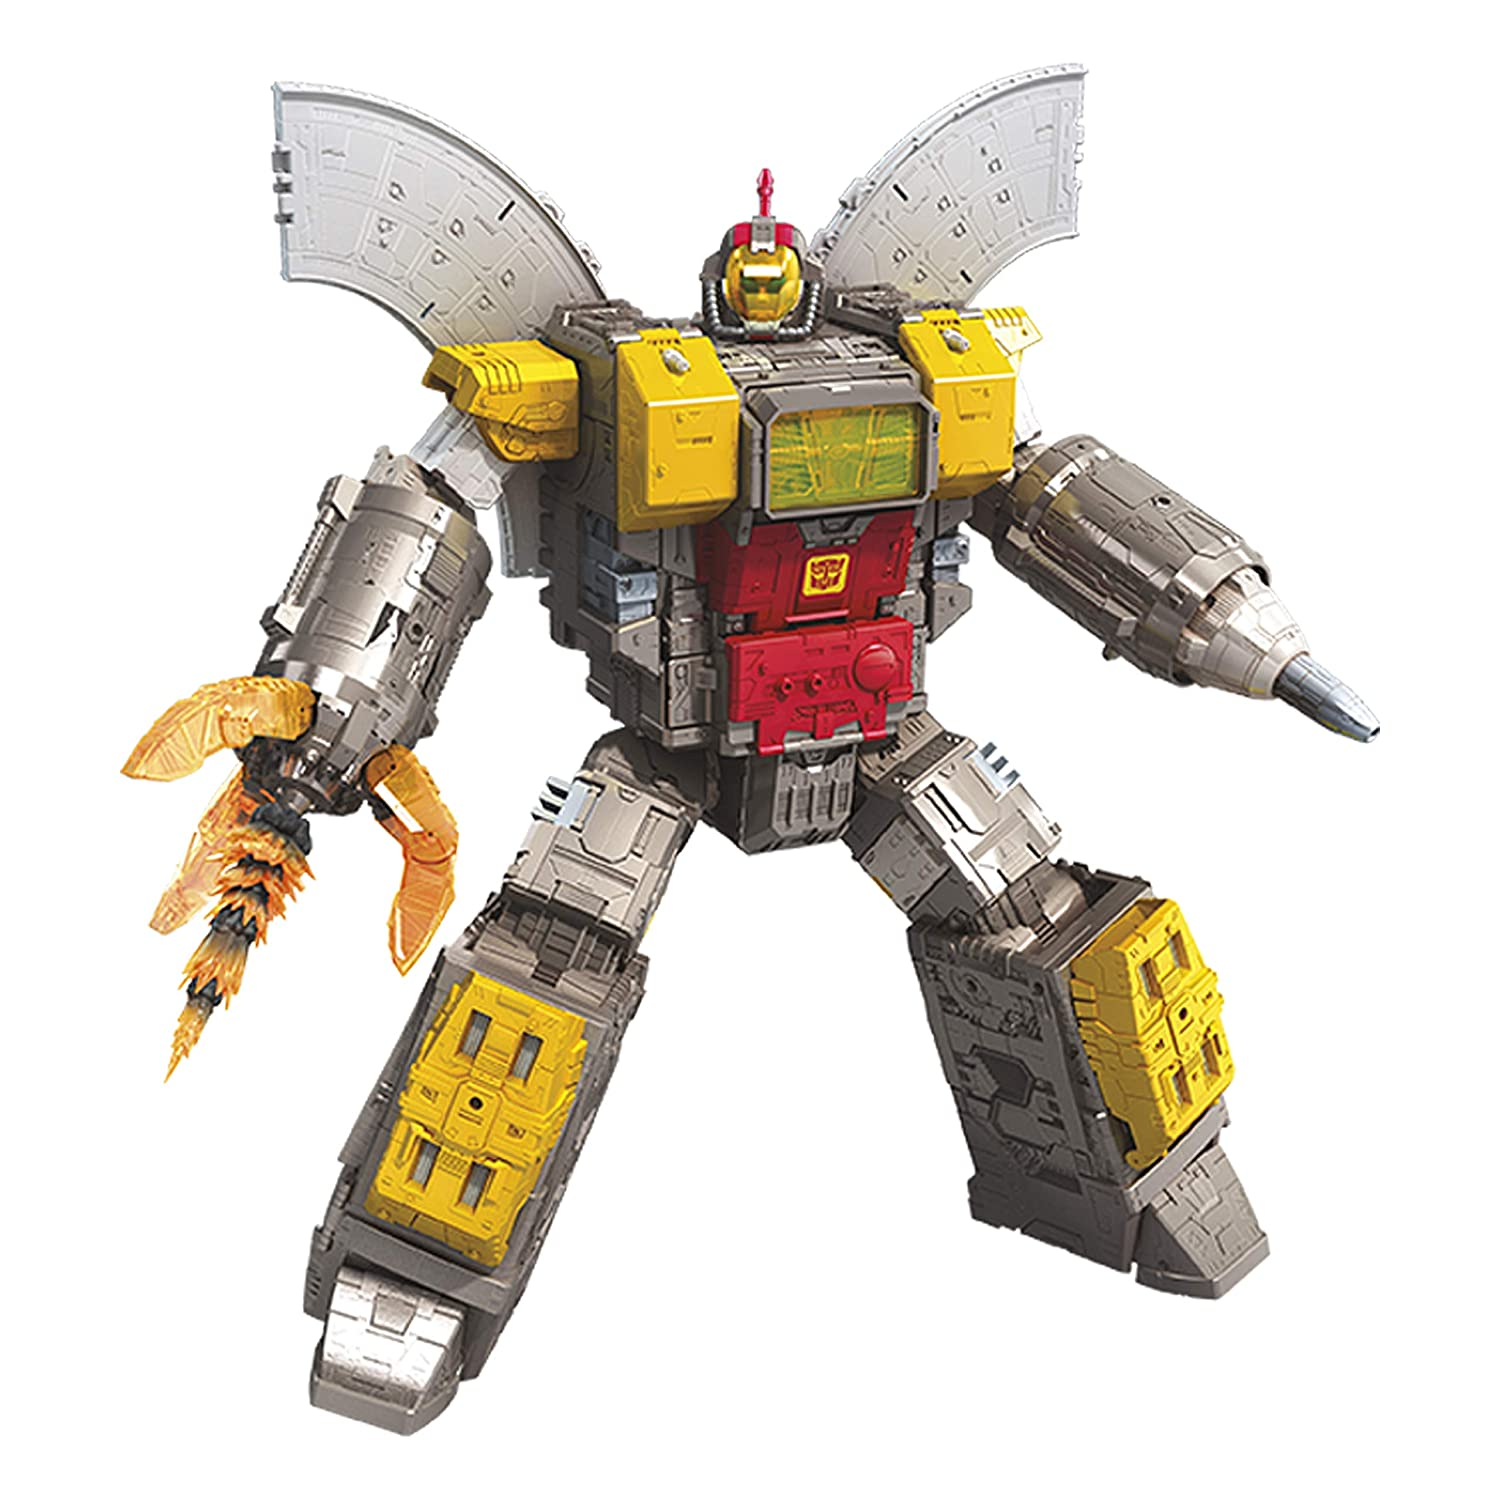 Transformers Toys Generations War For Cybertron Titan Wfc S29 Omega Supreme Action Figure Converts To Command Center S And Kids Ages 8 Up